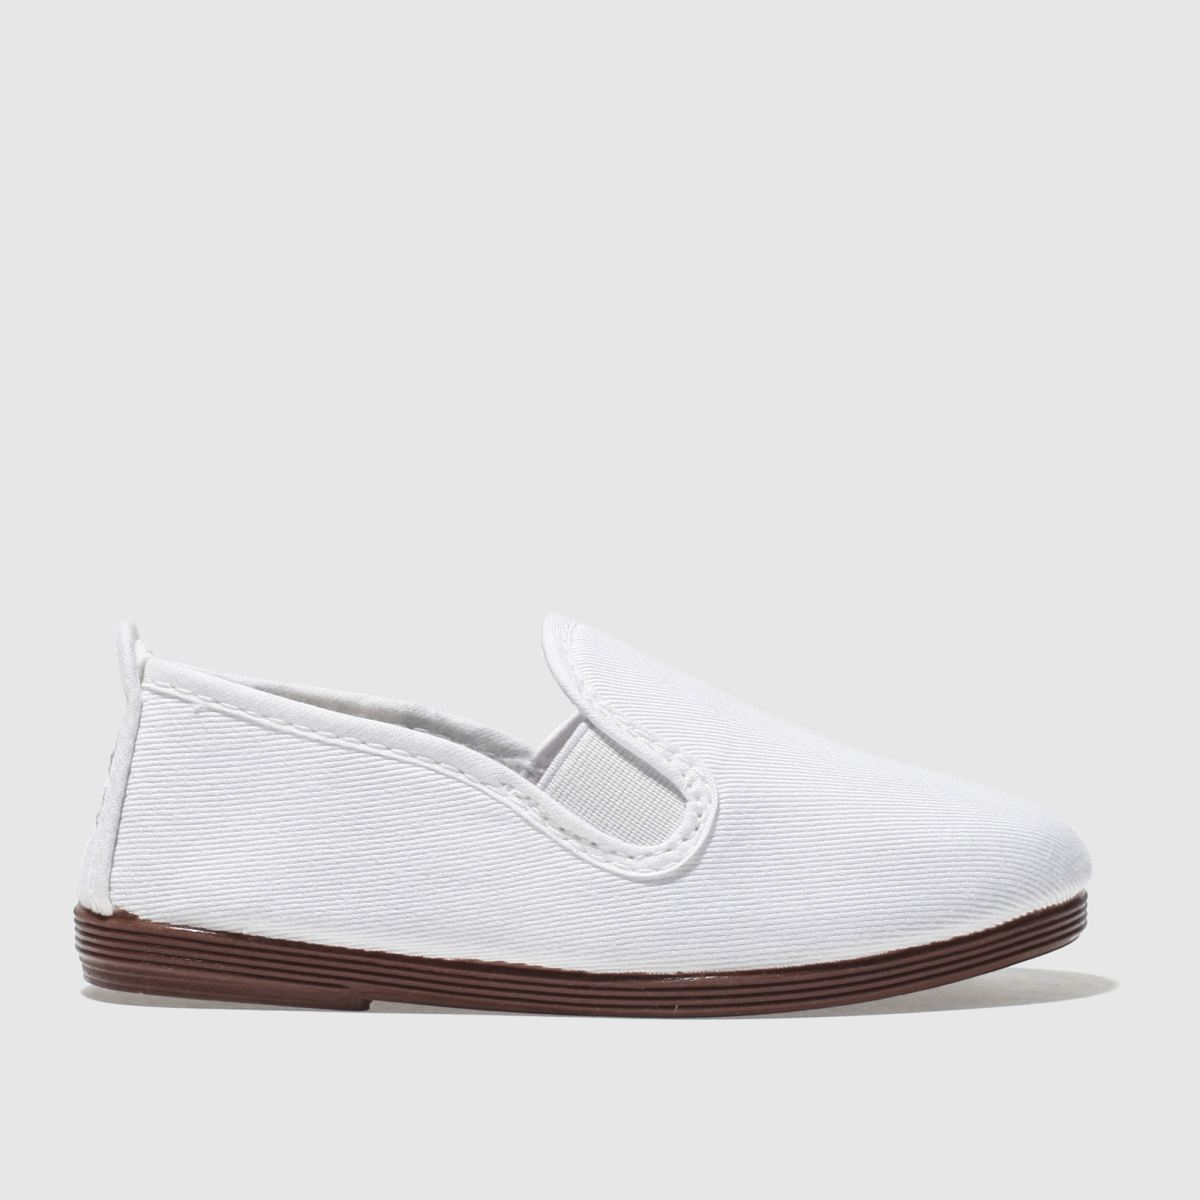 Flossy Flossy White Pamplona Toddler Shoes